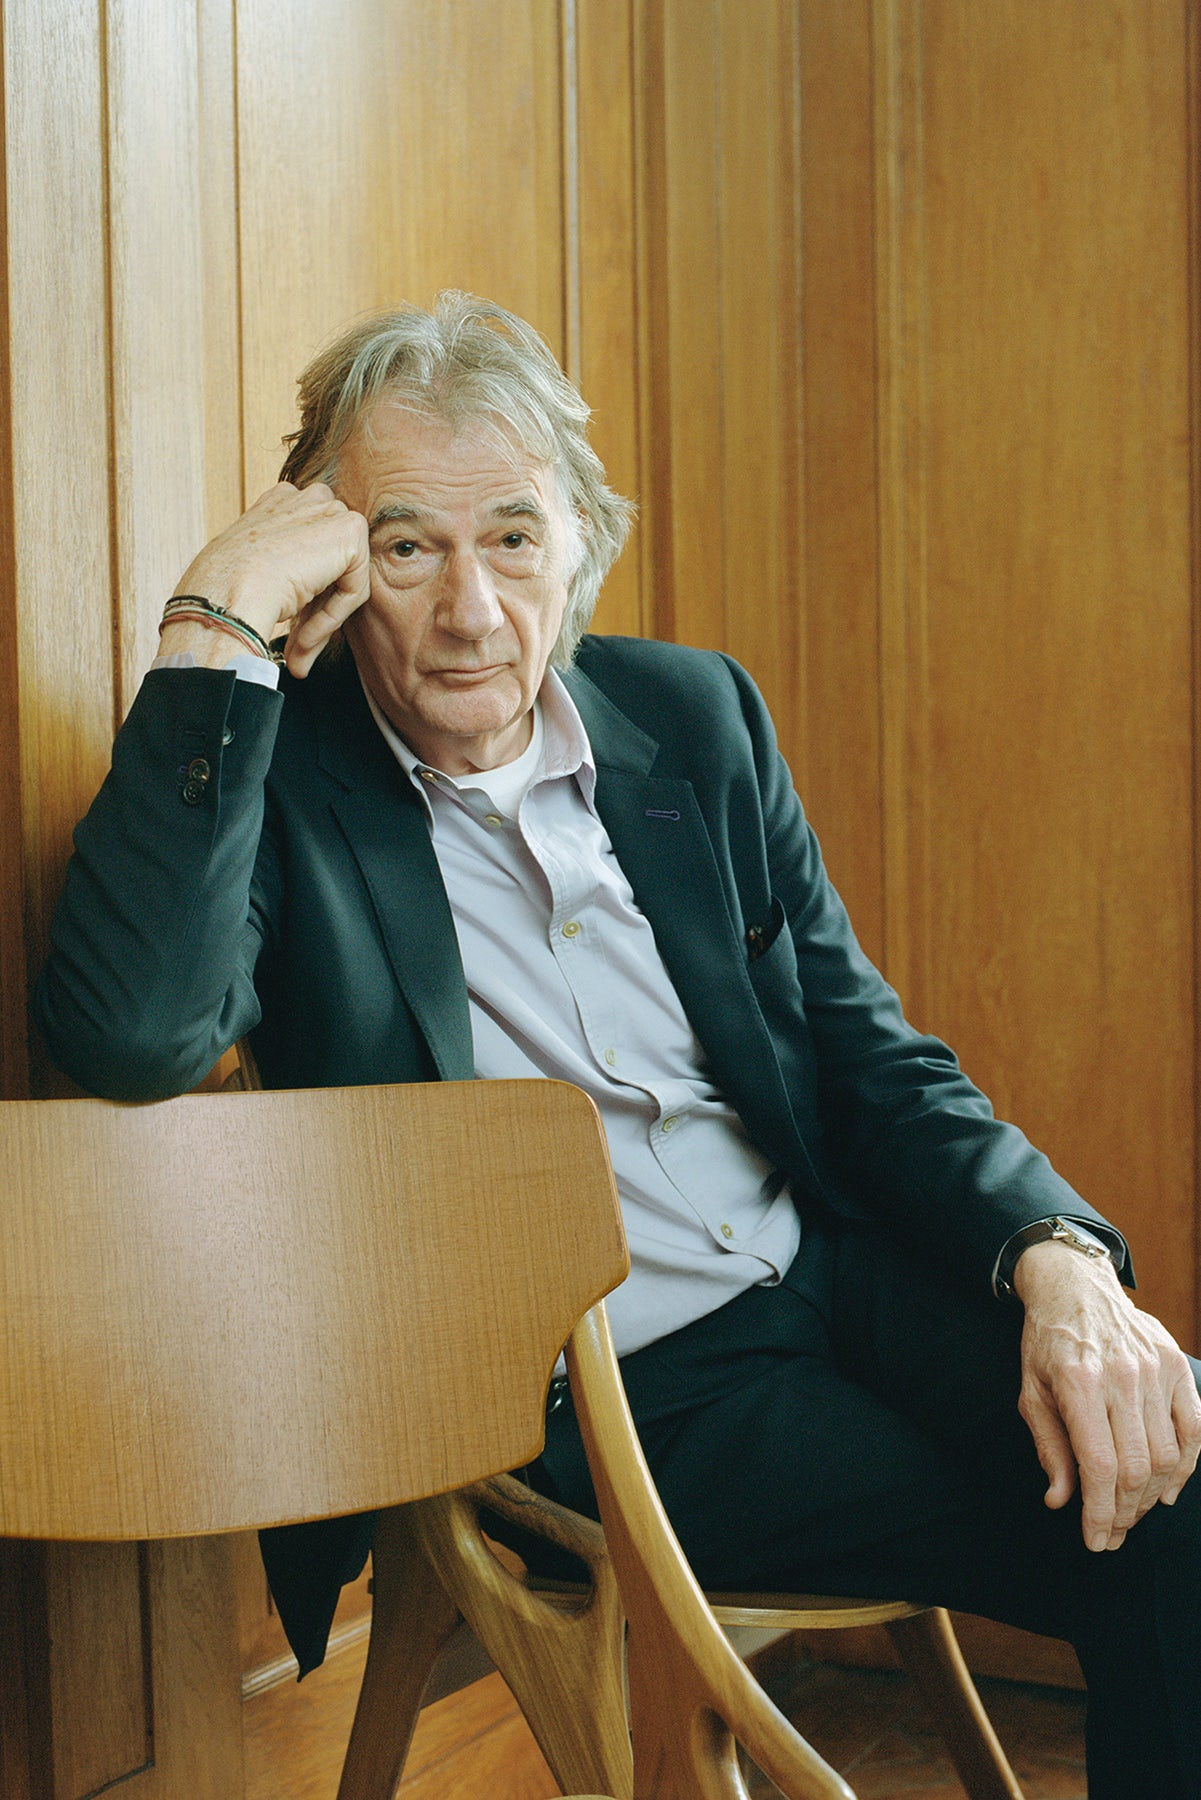 Paul Smith | Photo: Marton Perlaki for BoF